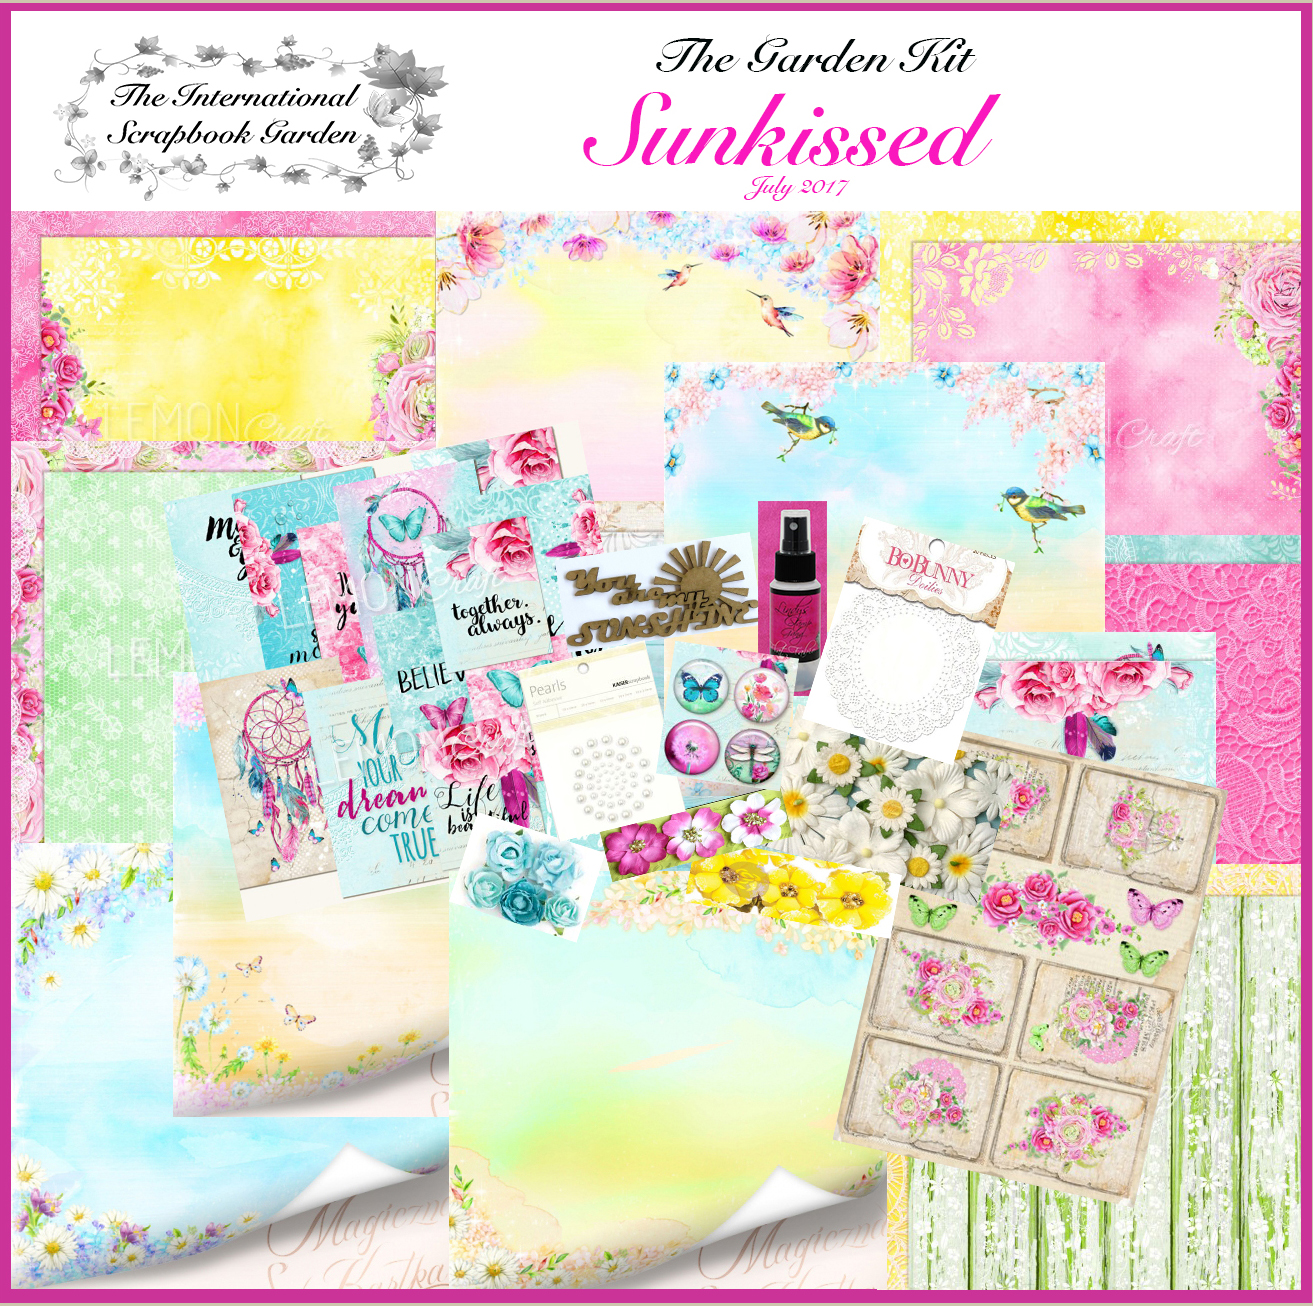 The Garden July Kit: Sunkissed